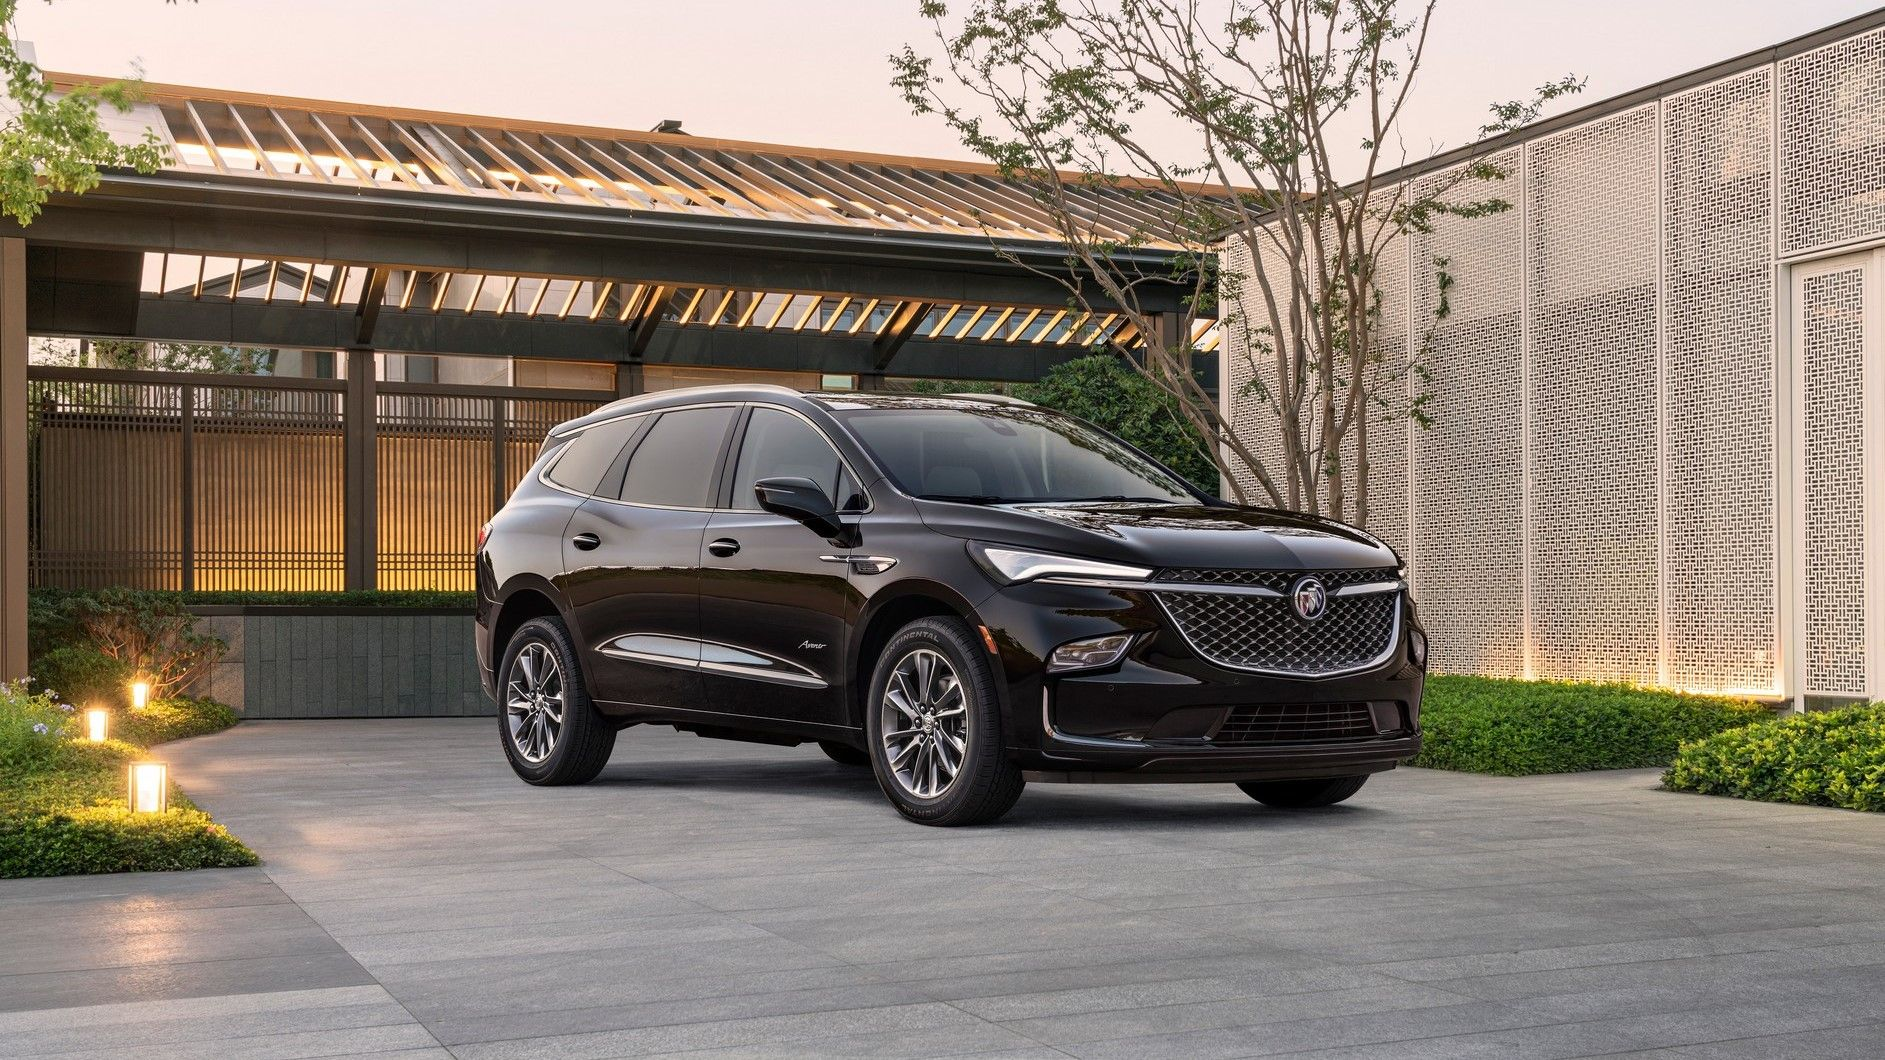 2022 Buick Enclave SUV First Look